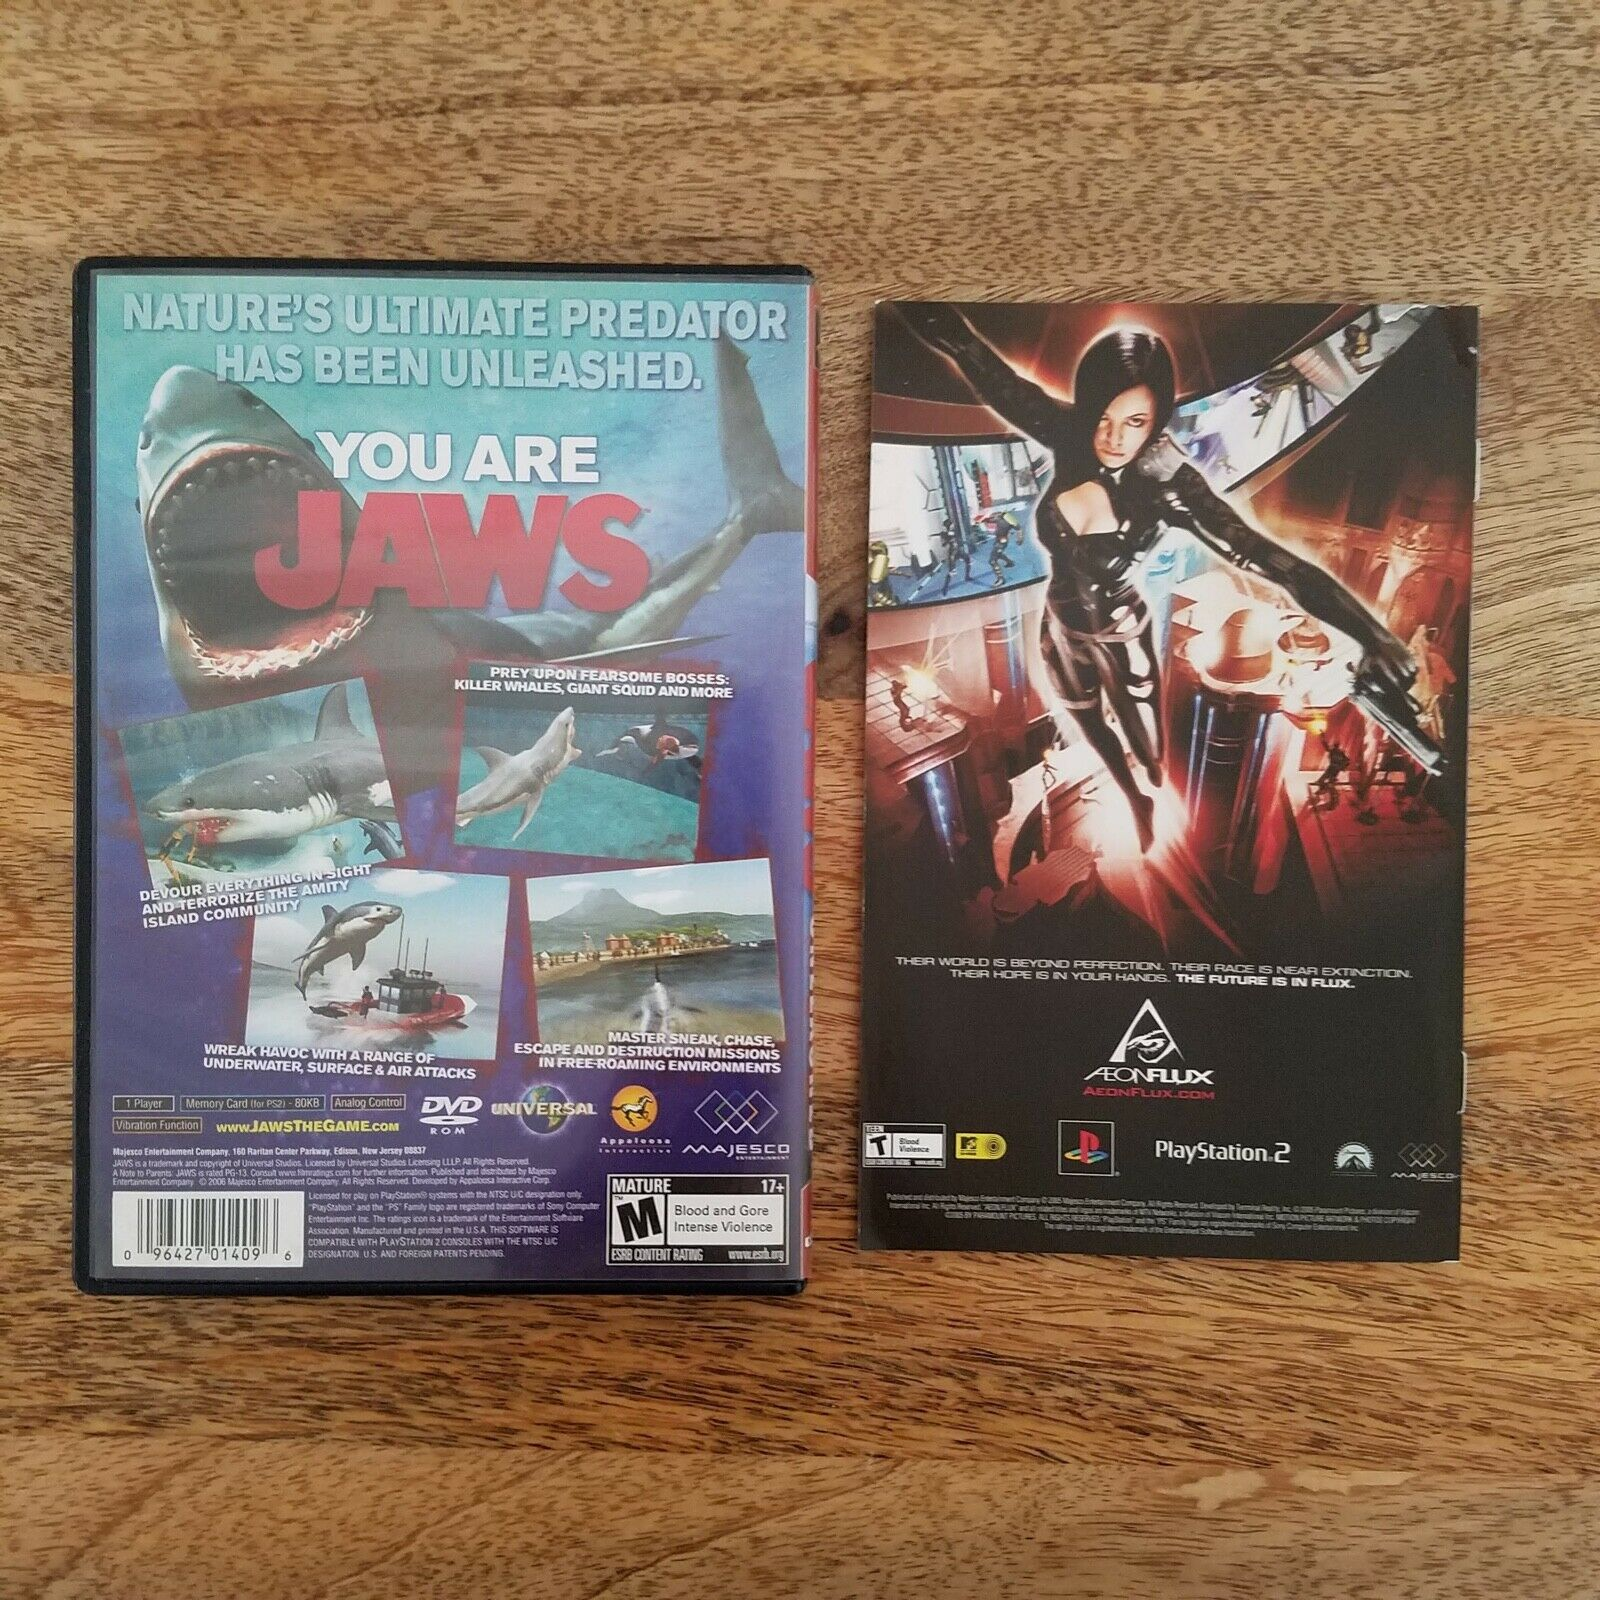 Jaws Unleashed Sony PlayStation 2 PS2 Greatest Hits Video Game 2006 Complete CIB - $16.99